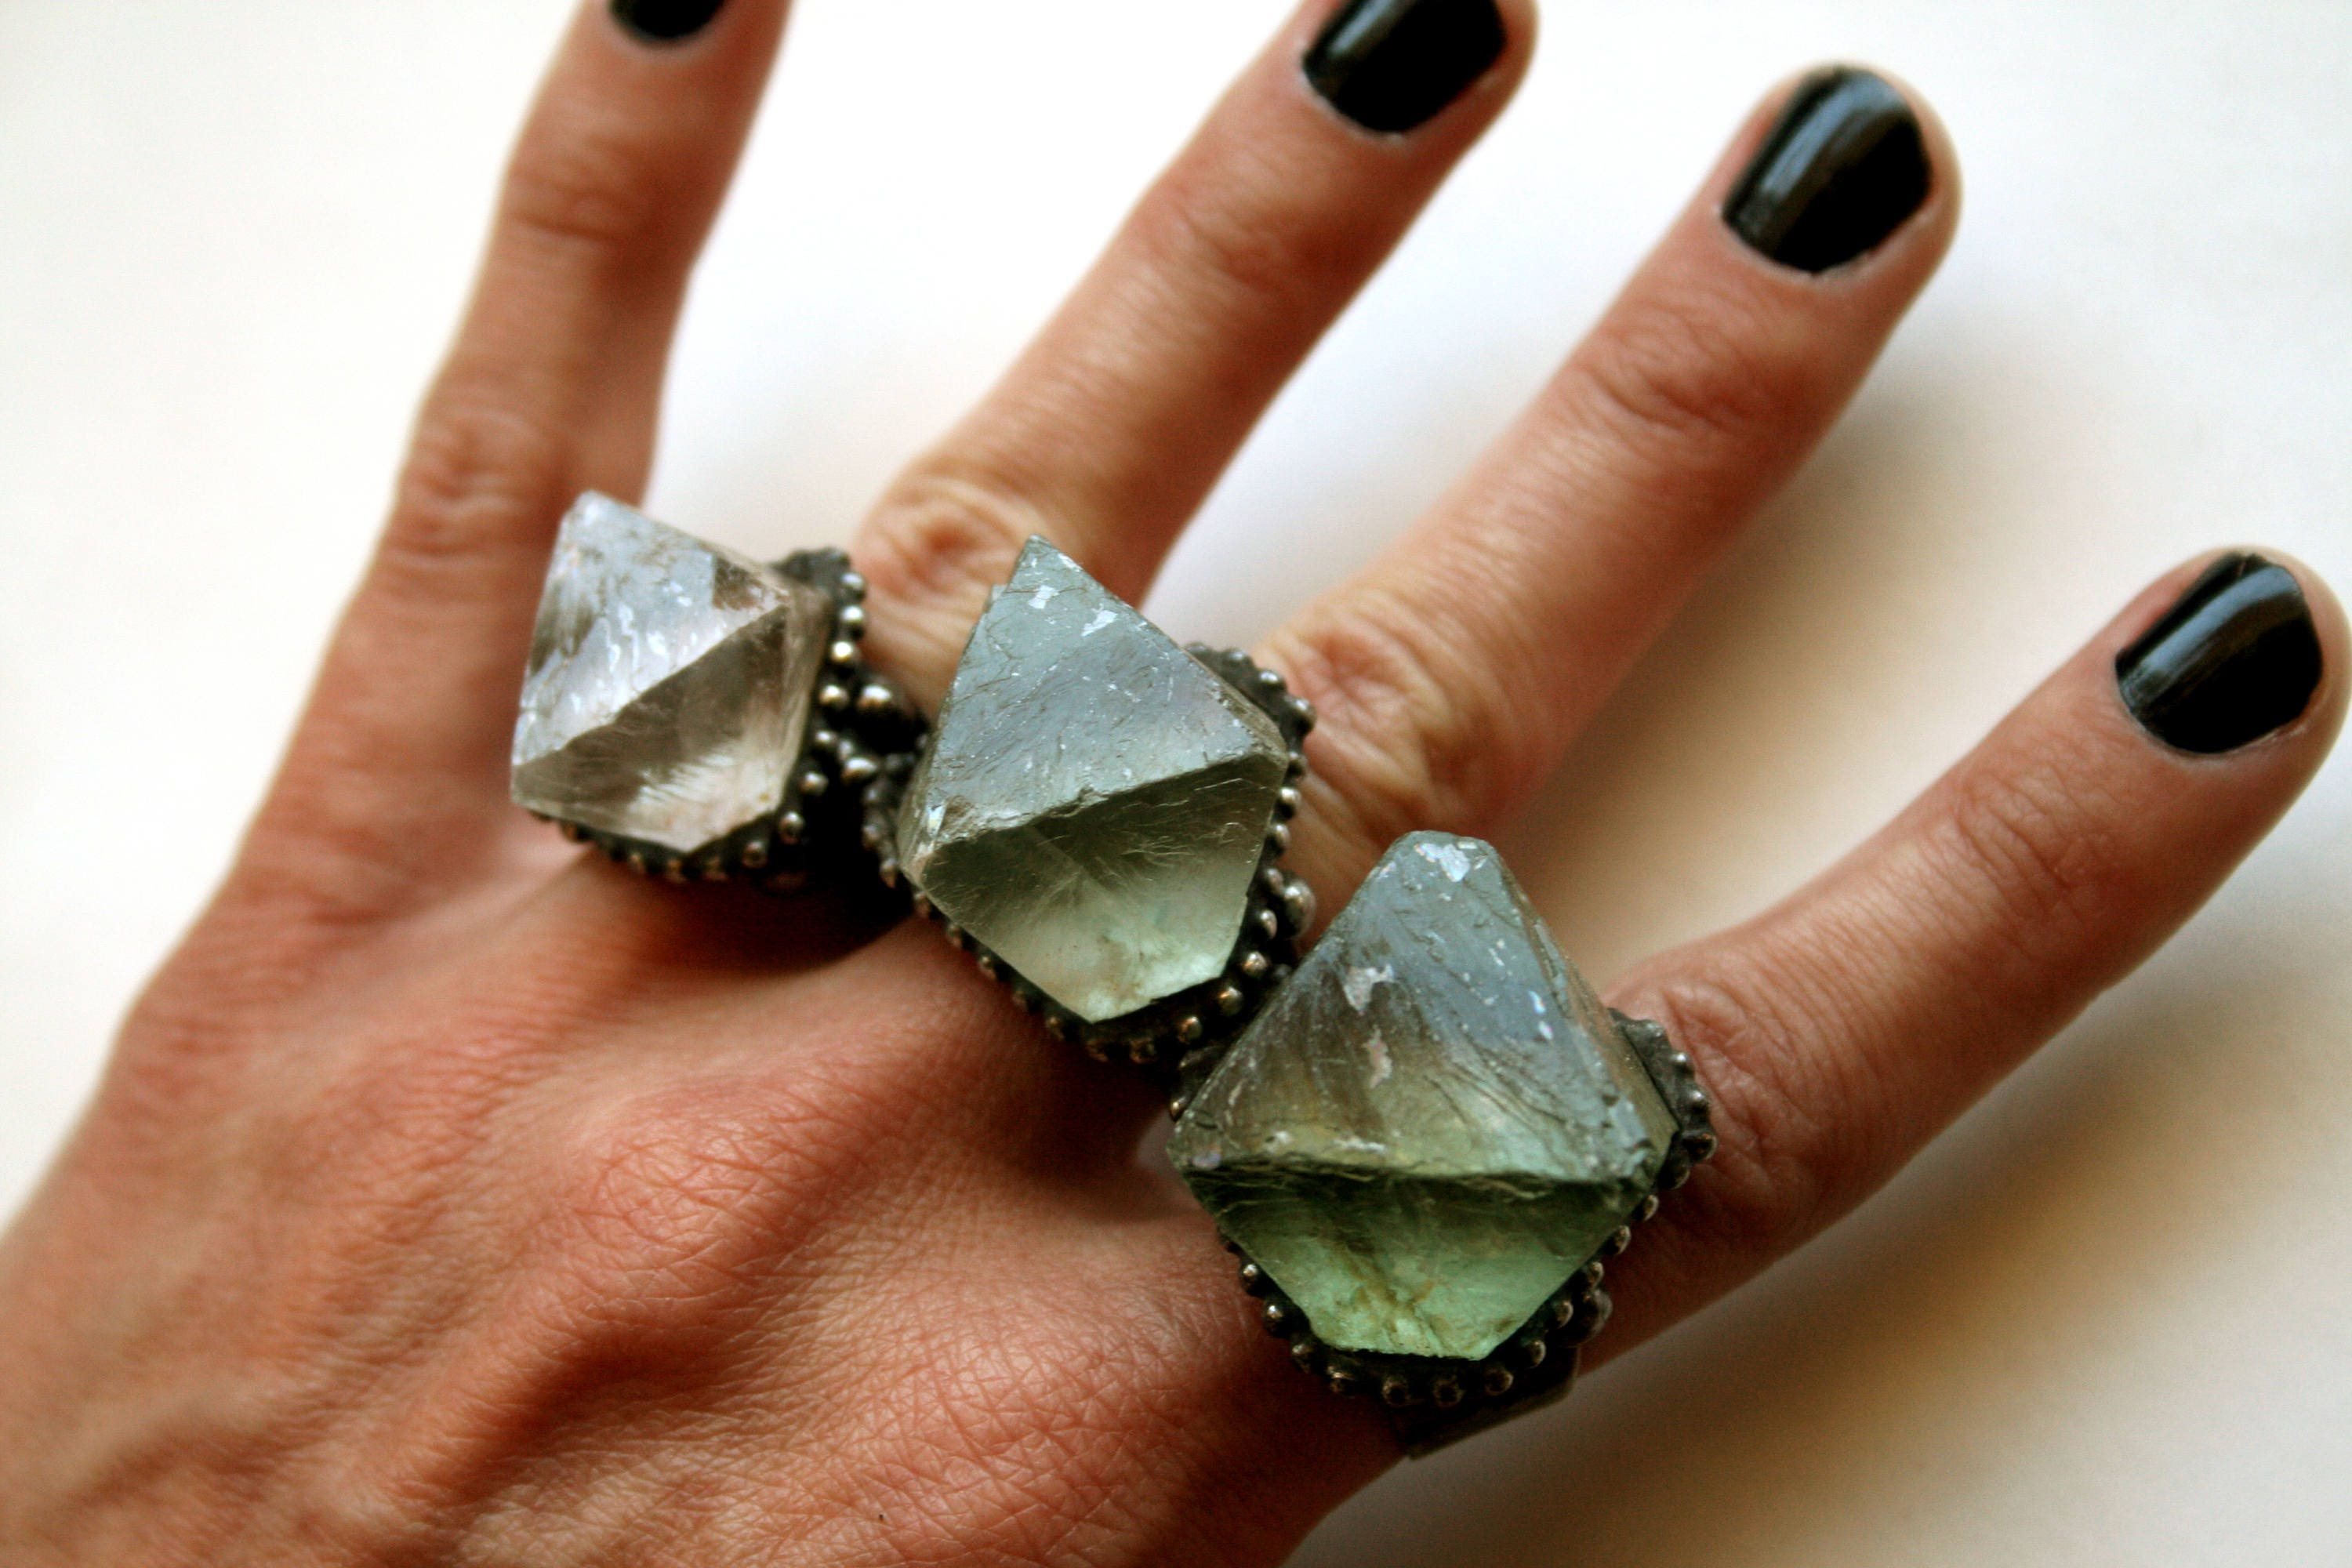 ring discover rings via pin vuitton louis trivelling fluorite